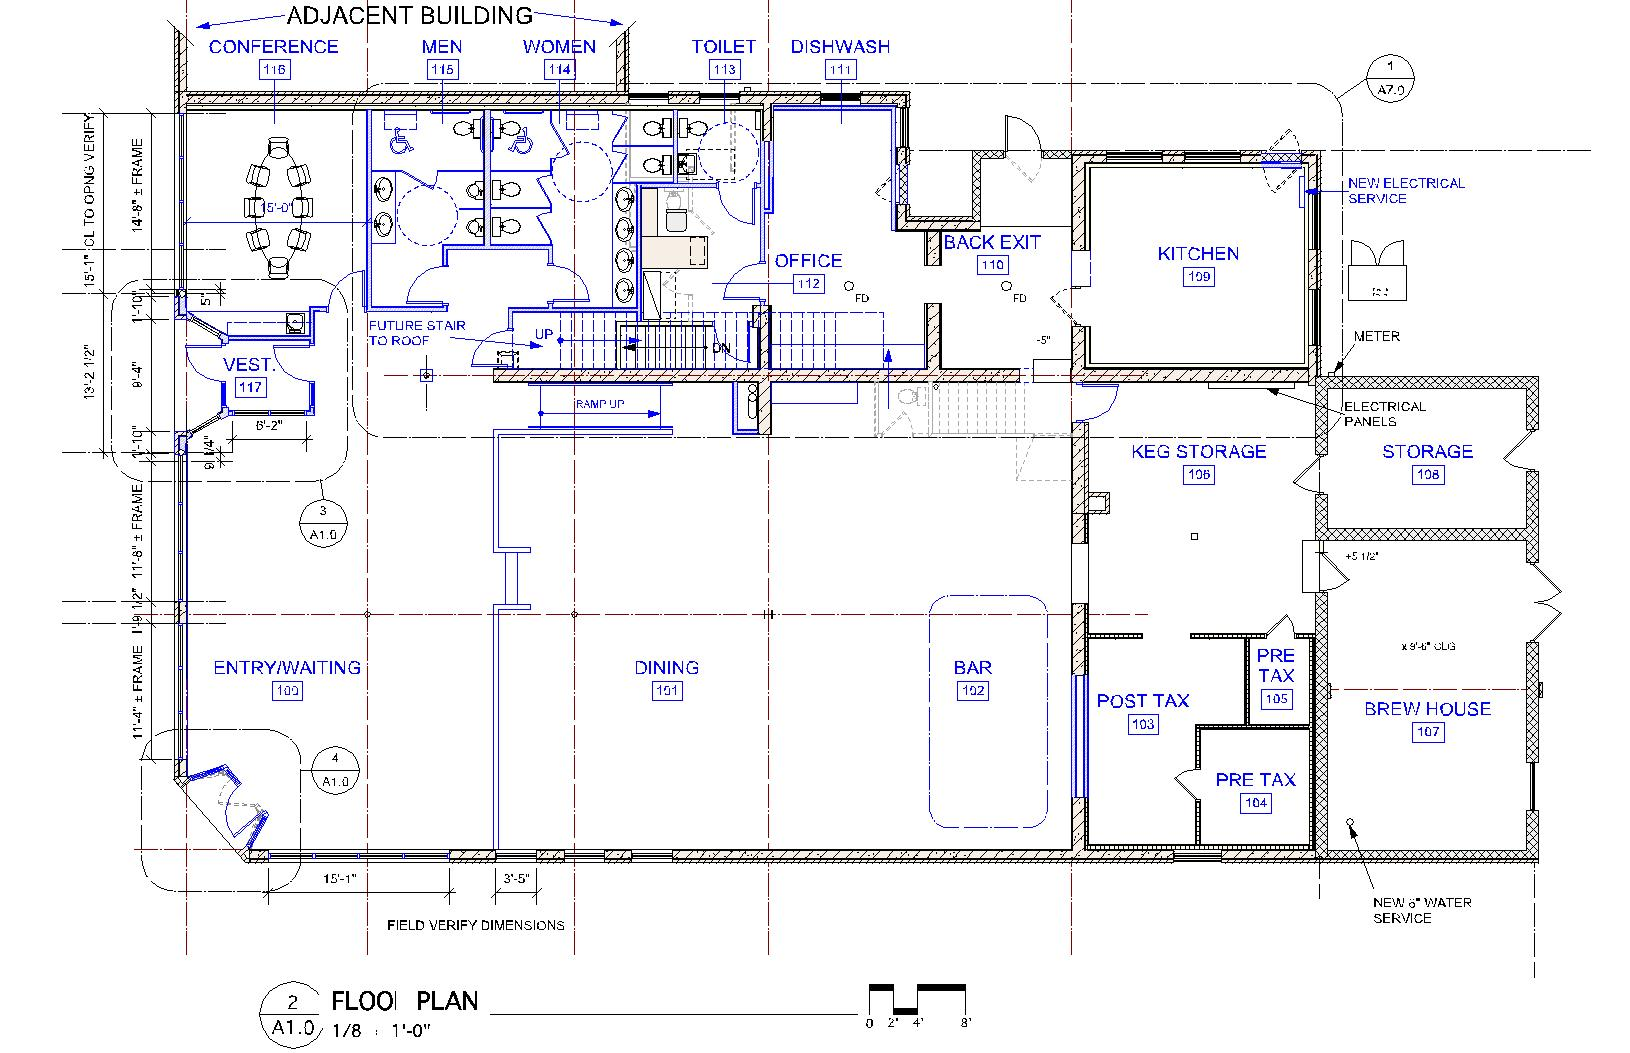 North-Abbey-Brewing-Company-floor-plan.jpg